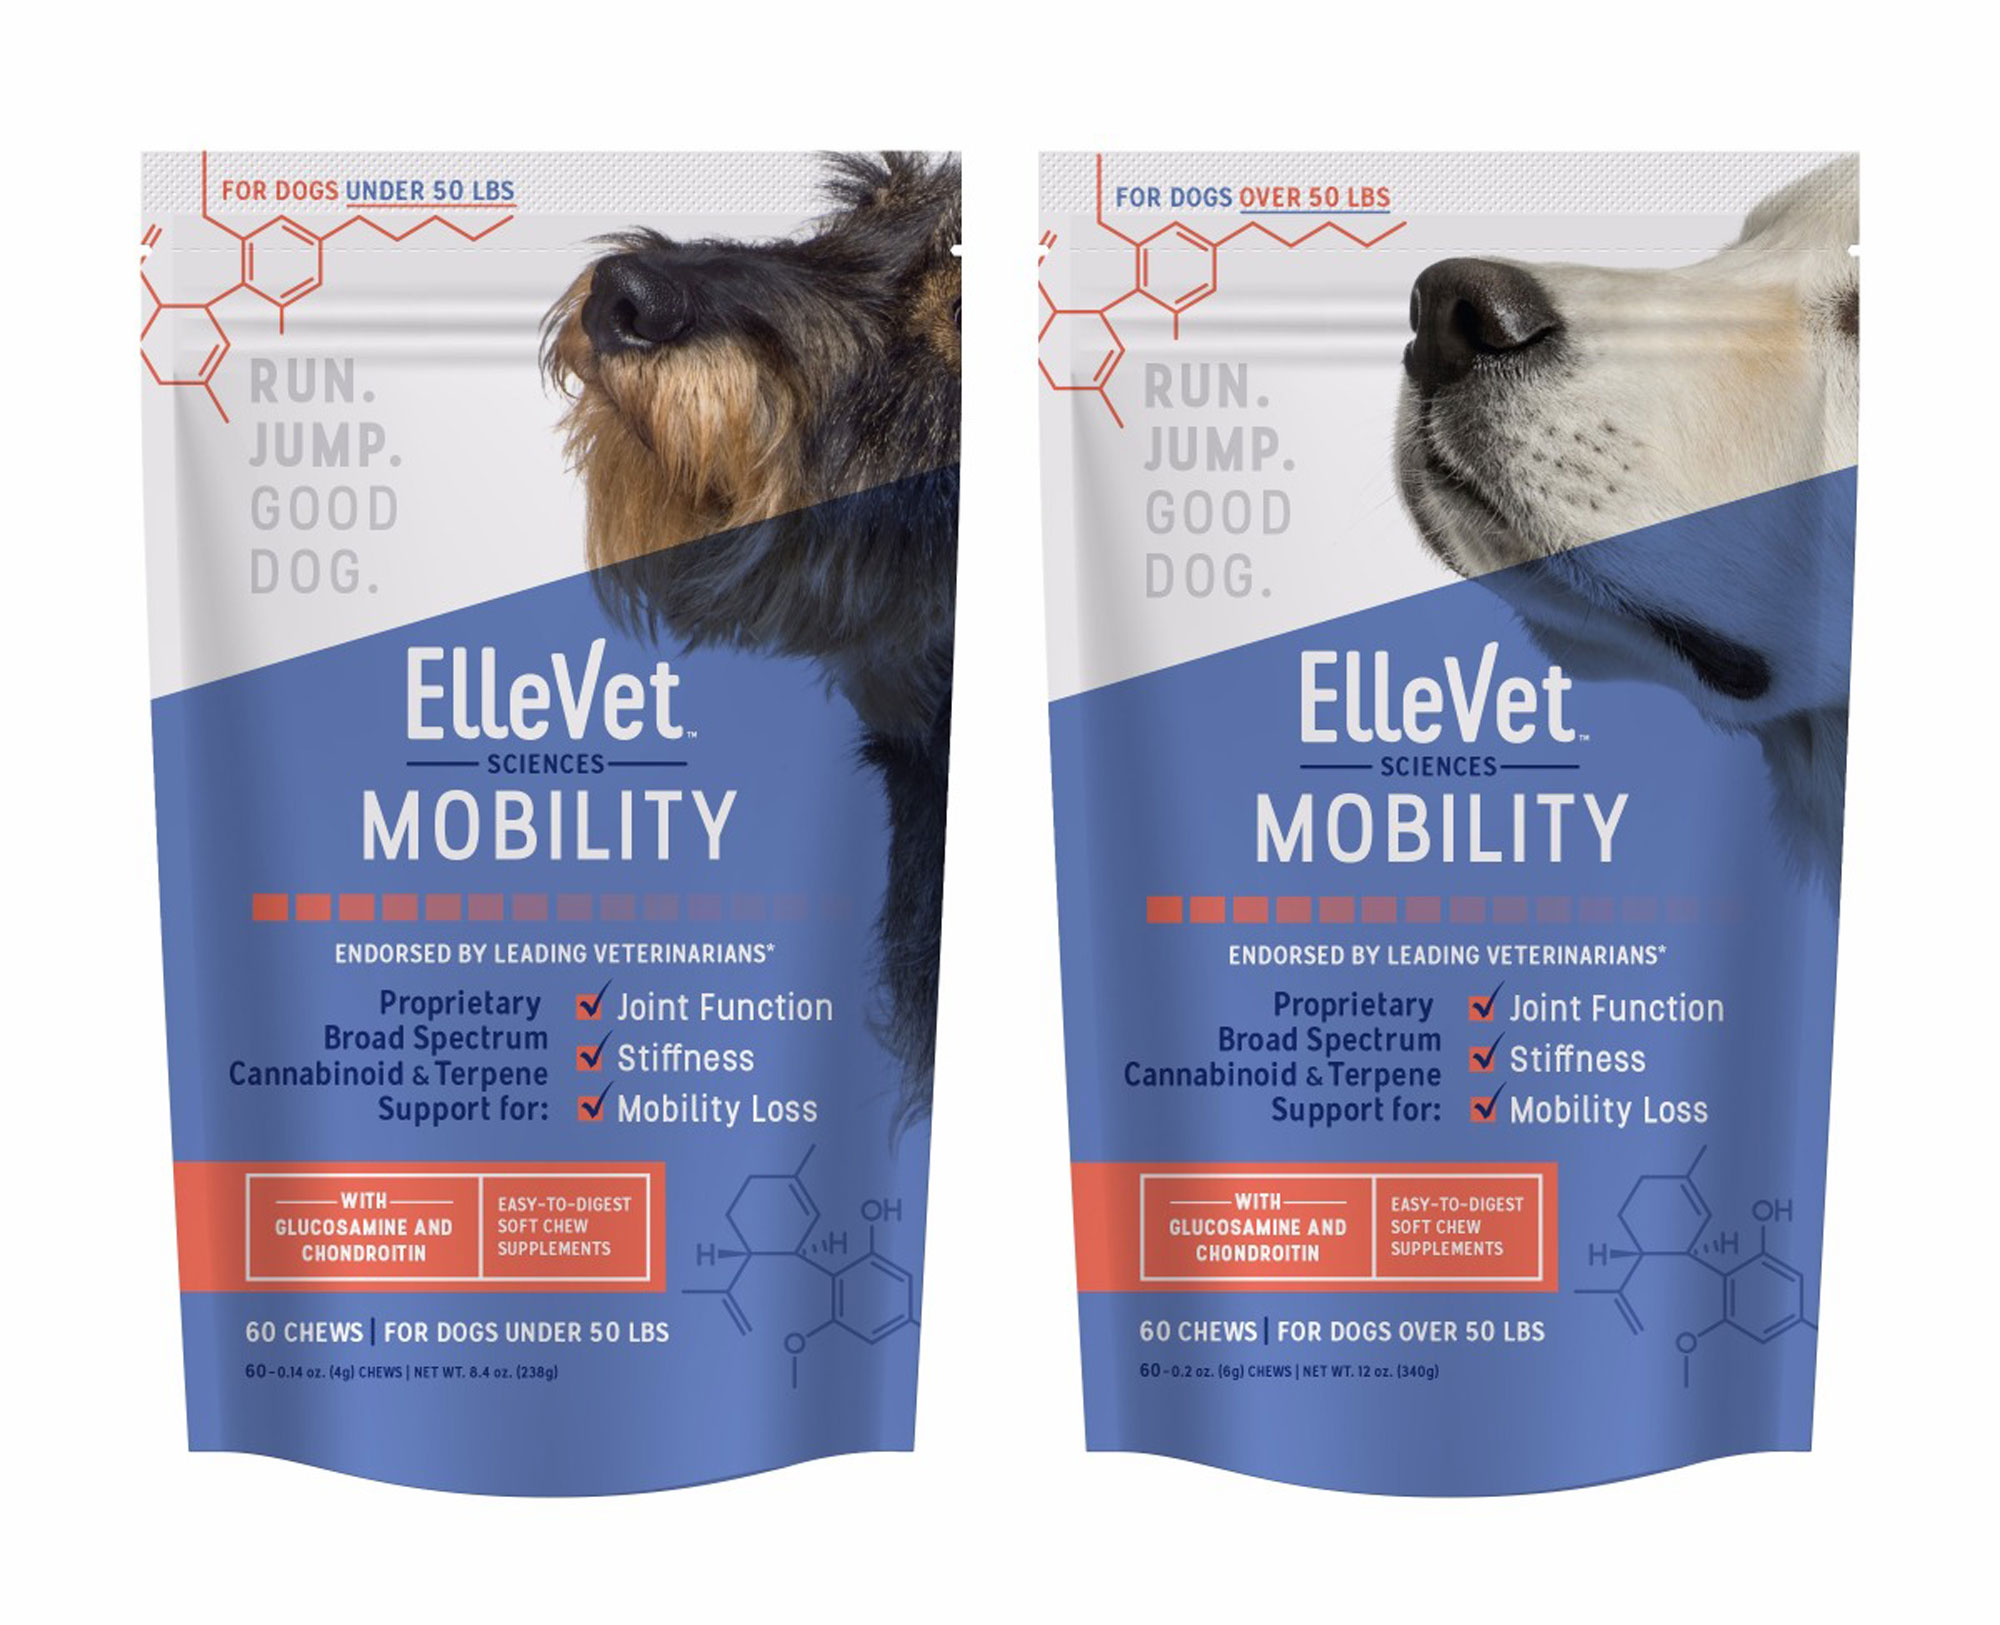 ElleVet Mobility - Dog Mobility Supplement